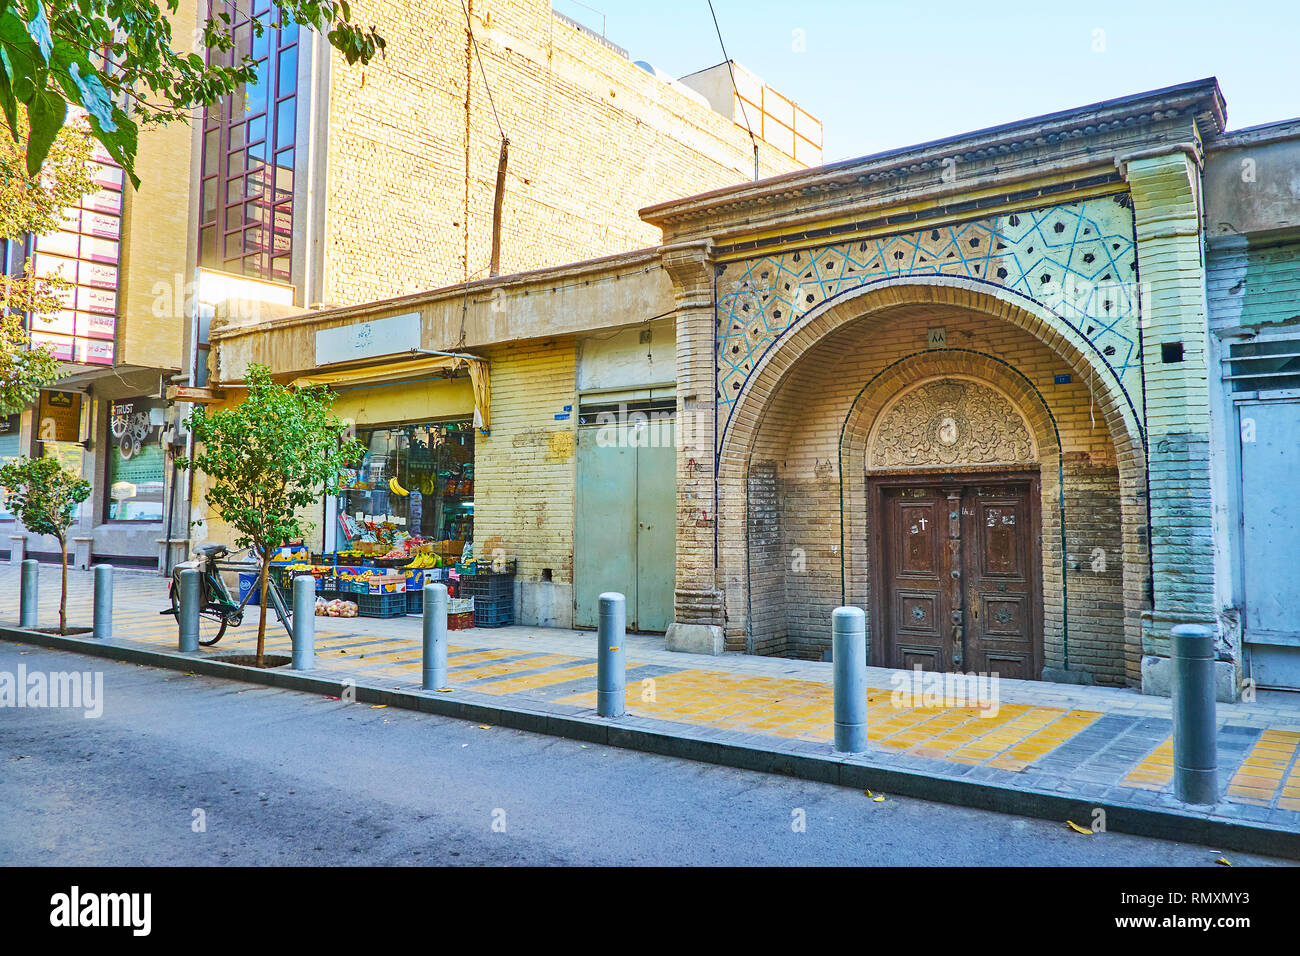 ISFAHAN, IRAN - OCTOBER 21, 2017: Historical Armenian Othodox church gate, decorated with carvings and tile patterns, located in New Julfa neighborhoo Stock Photo